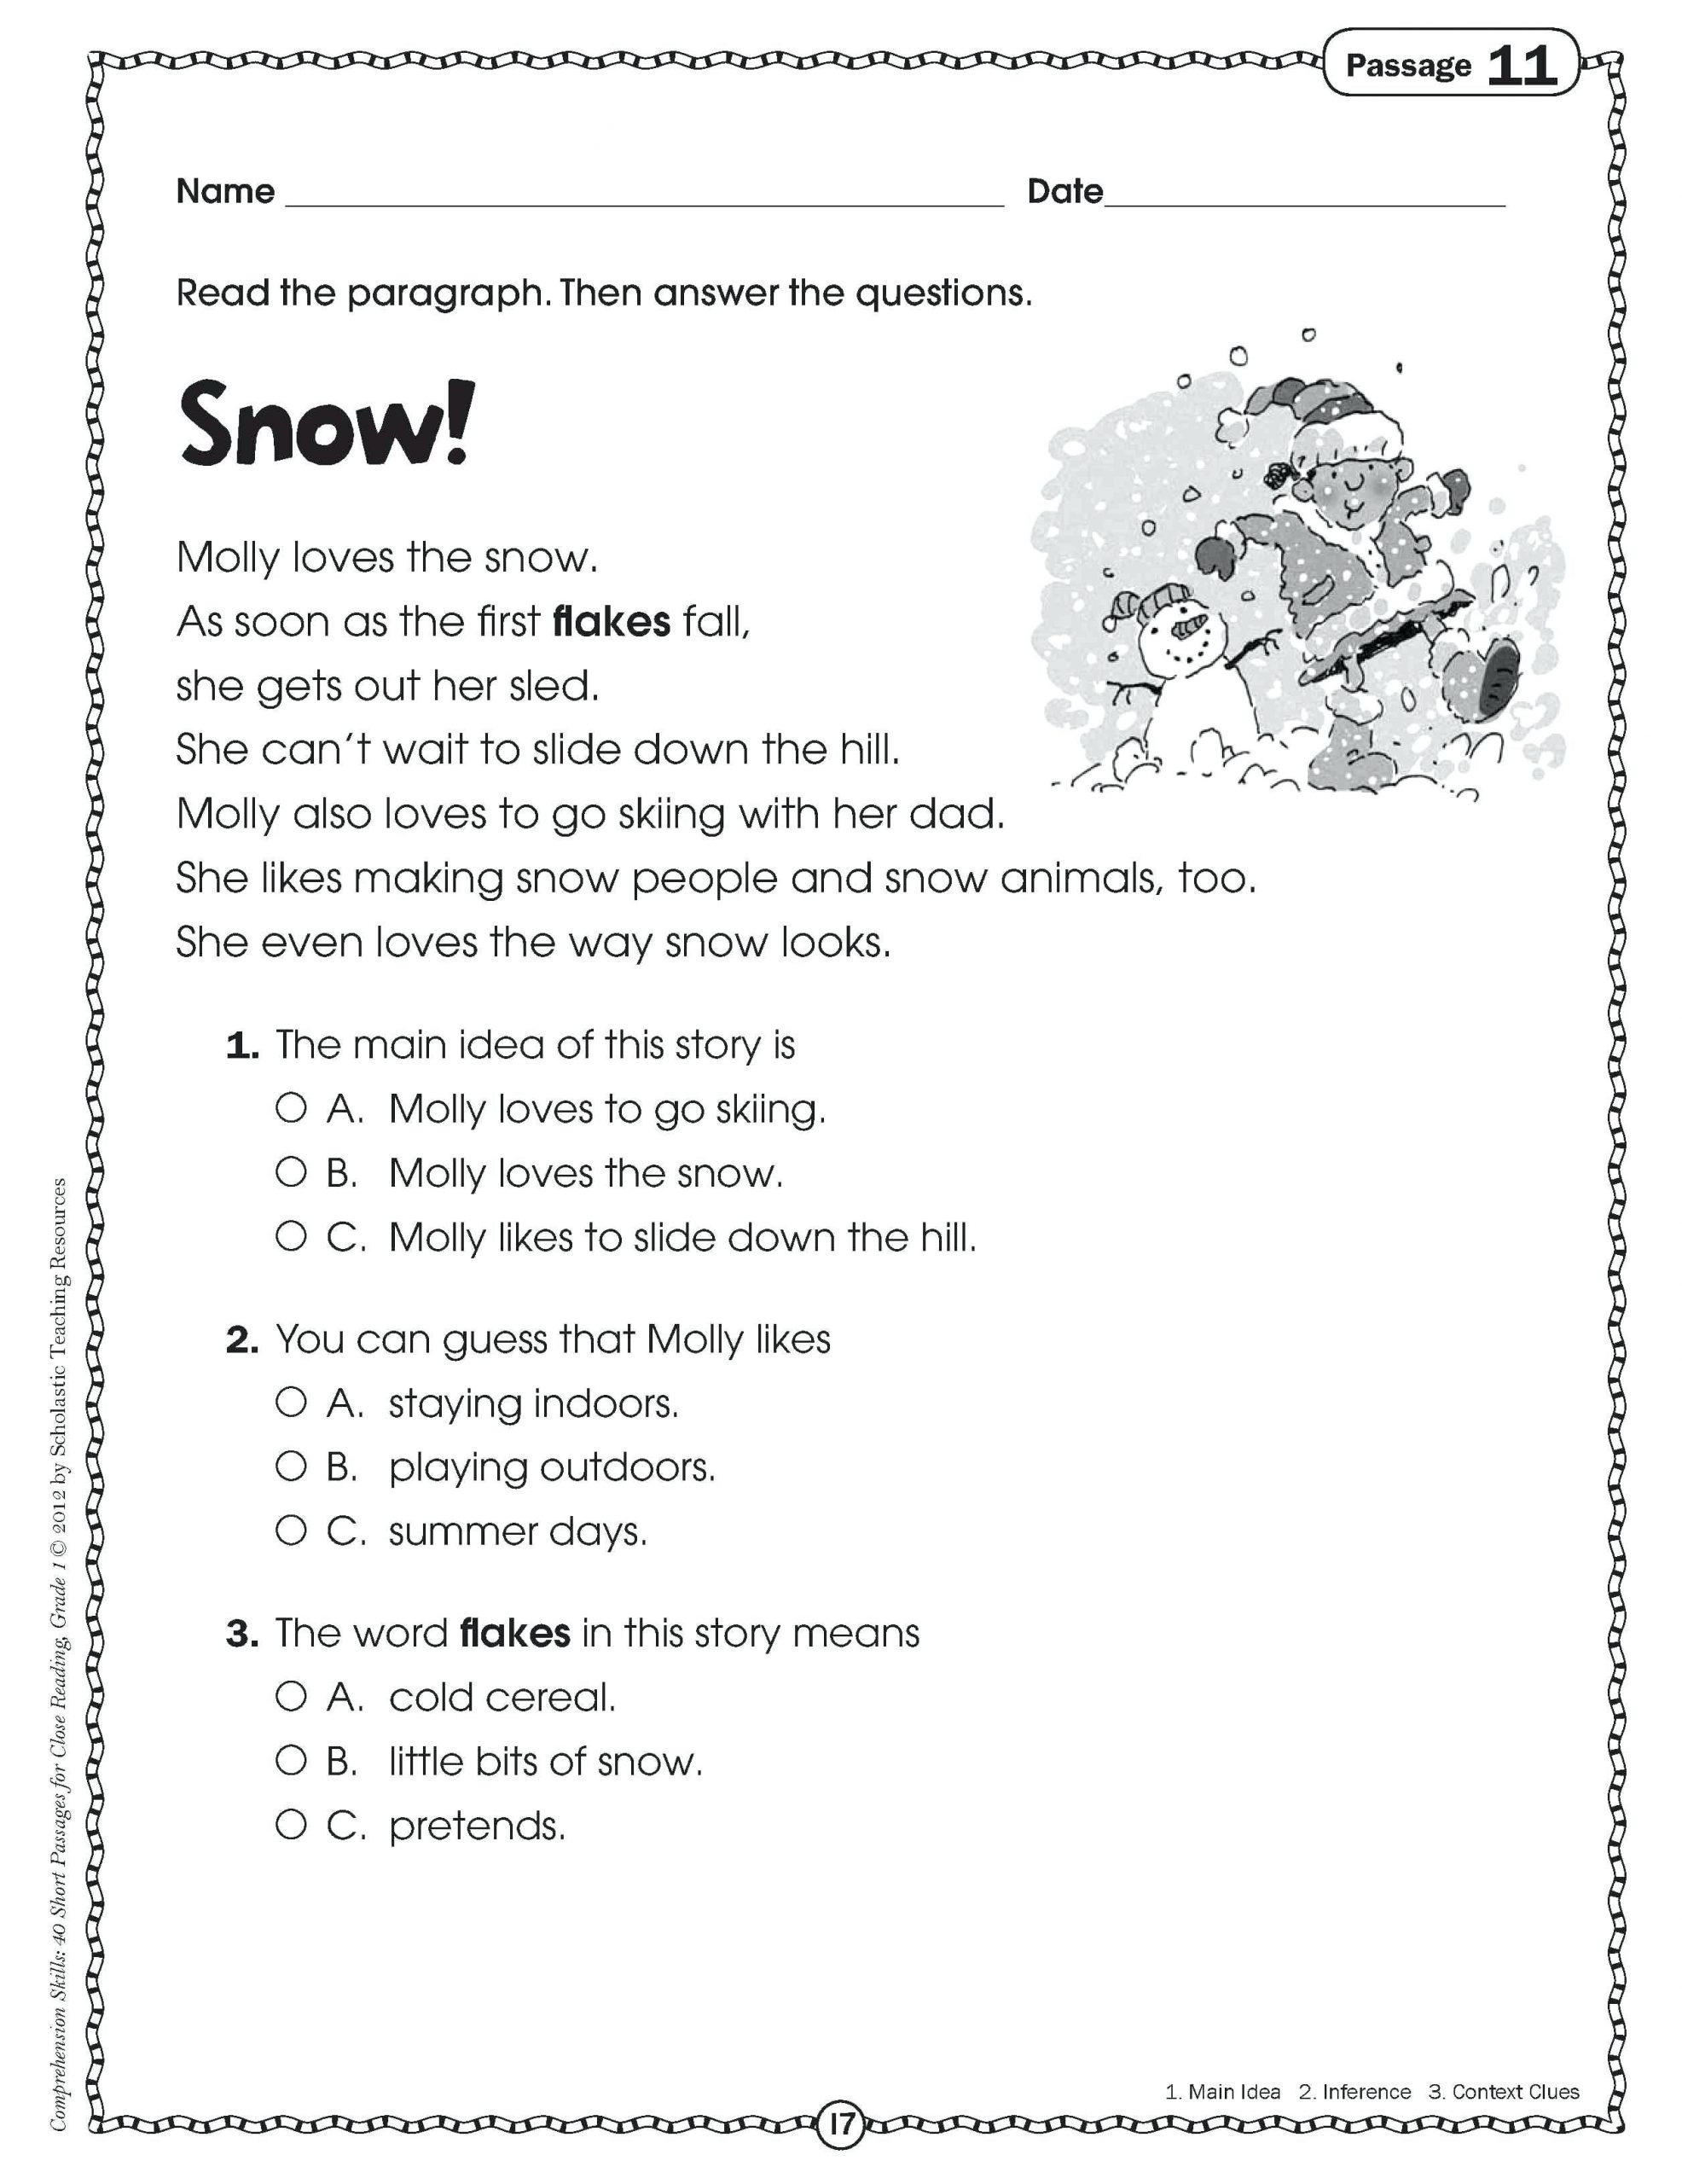 Context Clues Worksheets 2nd Grade Main Idea Worksheets 4th Grade to Printable Math Worksheet